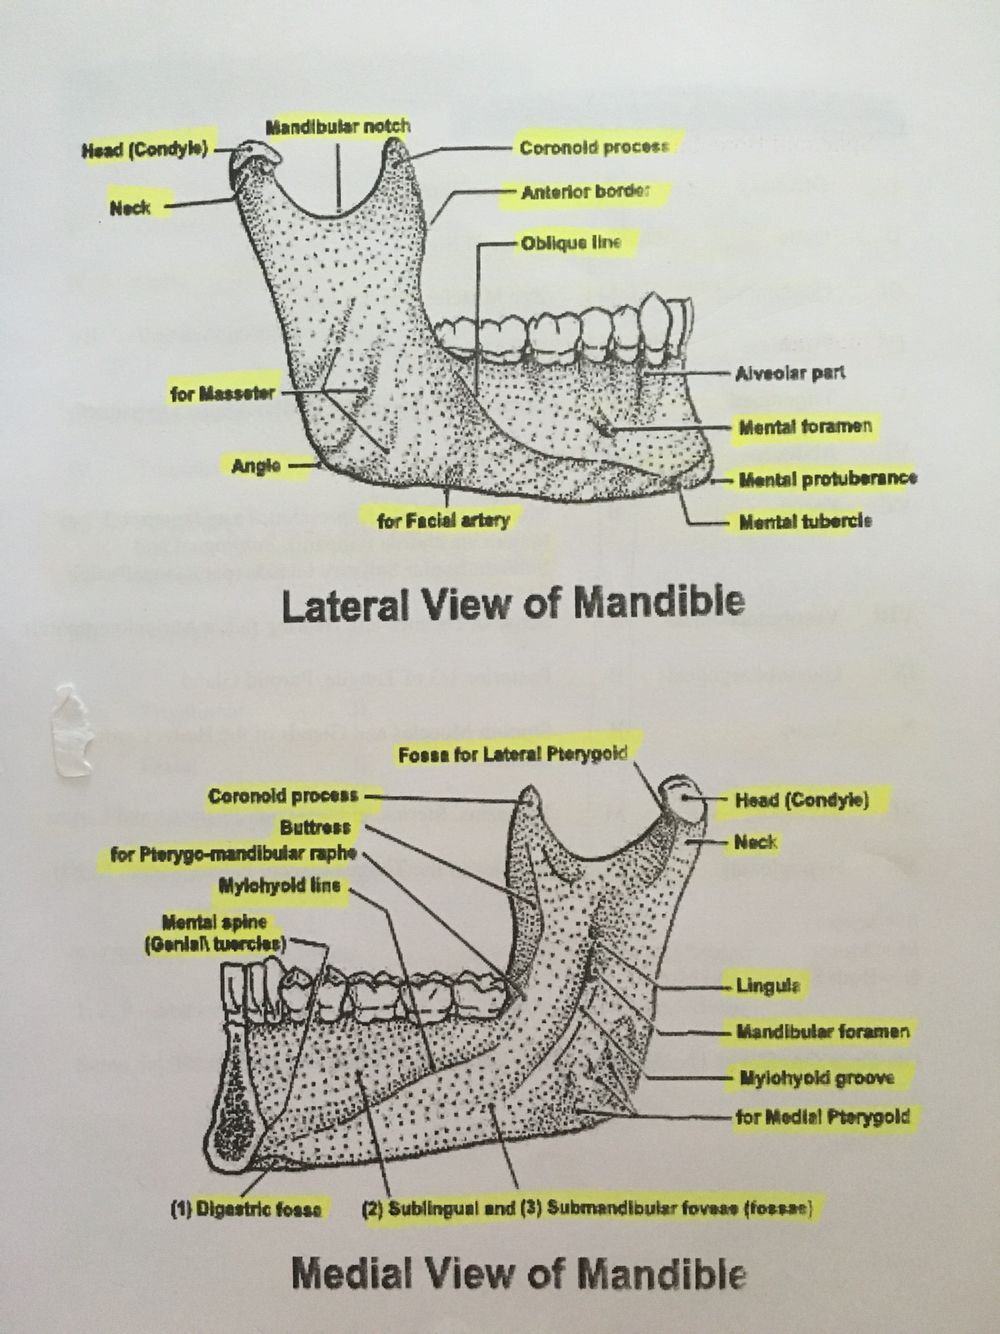 Anatomy of Mandible dental hygiene national board exam | Dental ...